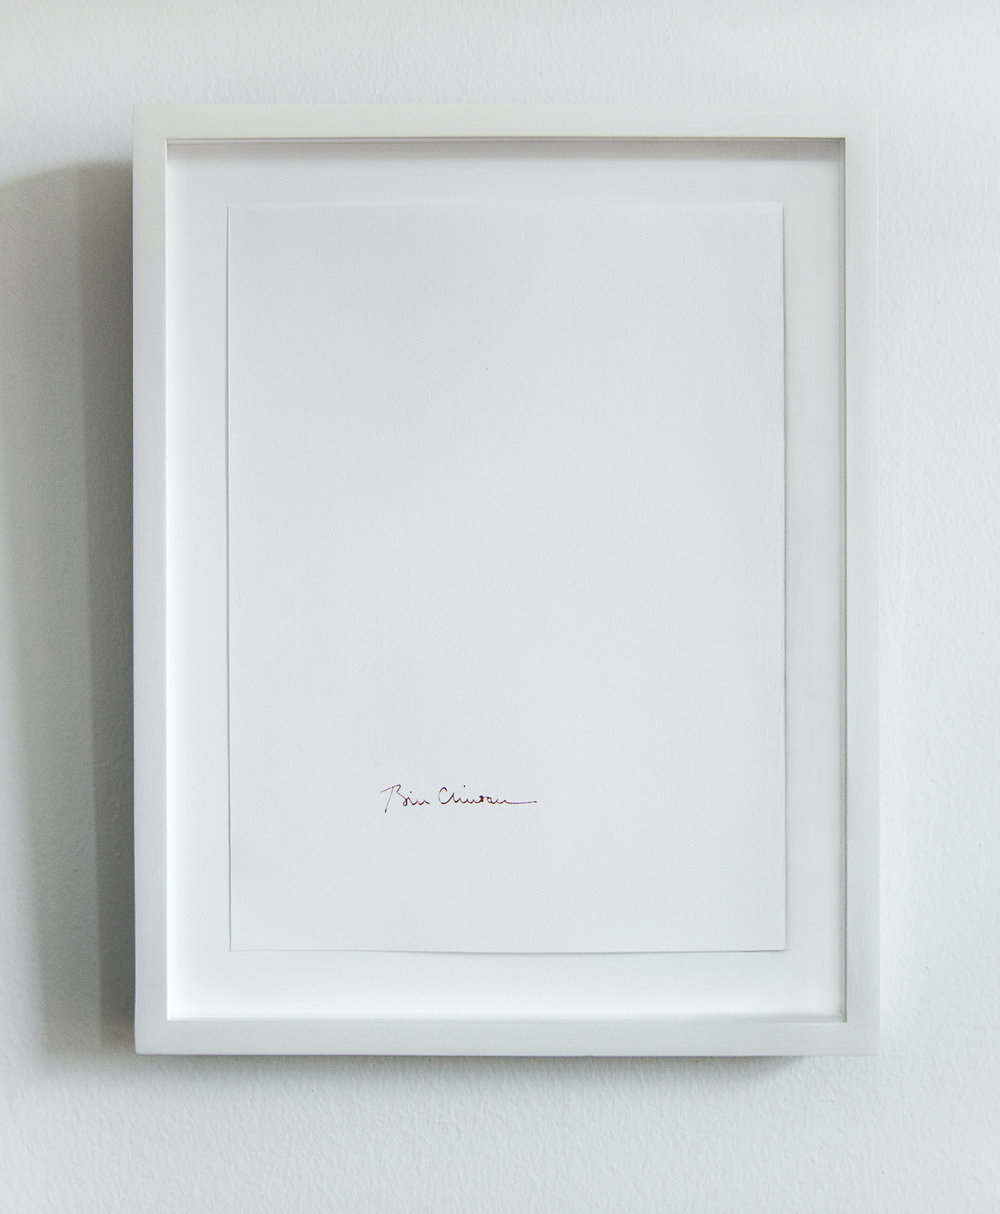 Bill Clinton (1993-2001: NAFTA, 1994 Crime Bill, IIRIRA, etc.)   From the series  Everybody knows that they are guilty:  2013 - ongoing Human blood on paper 8.5 x 11 inches